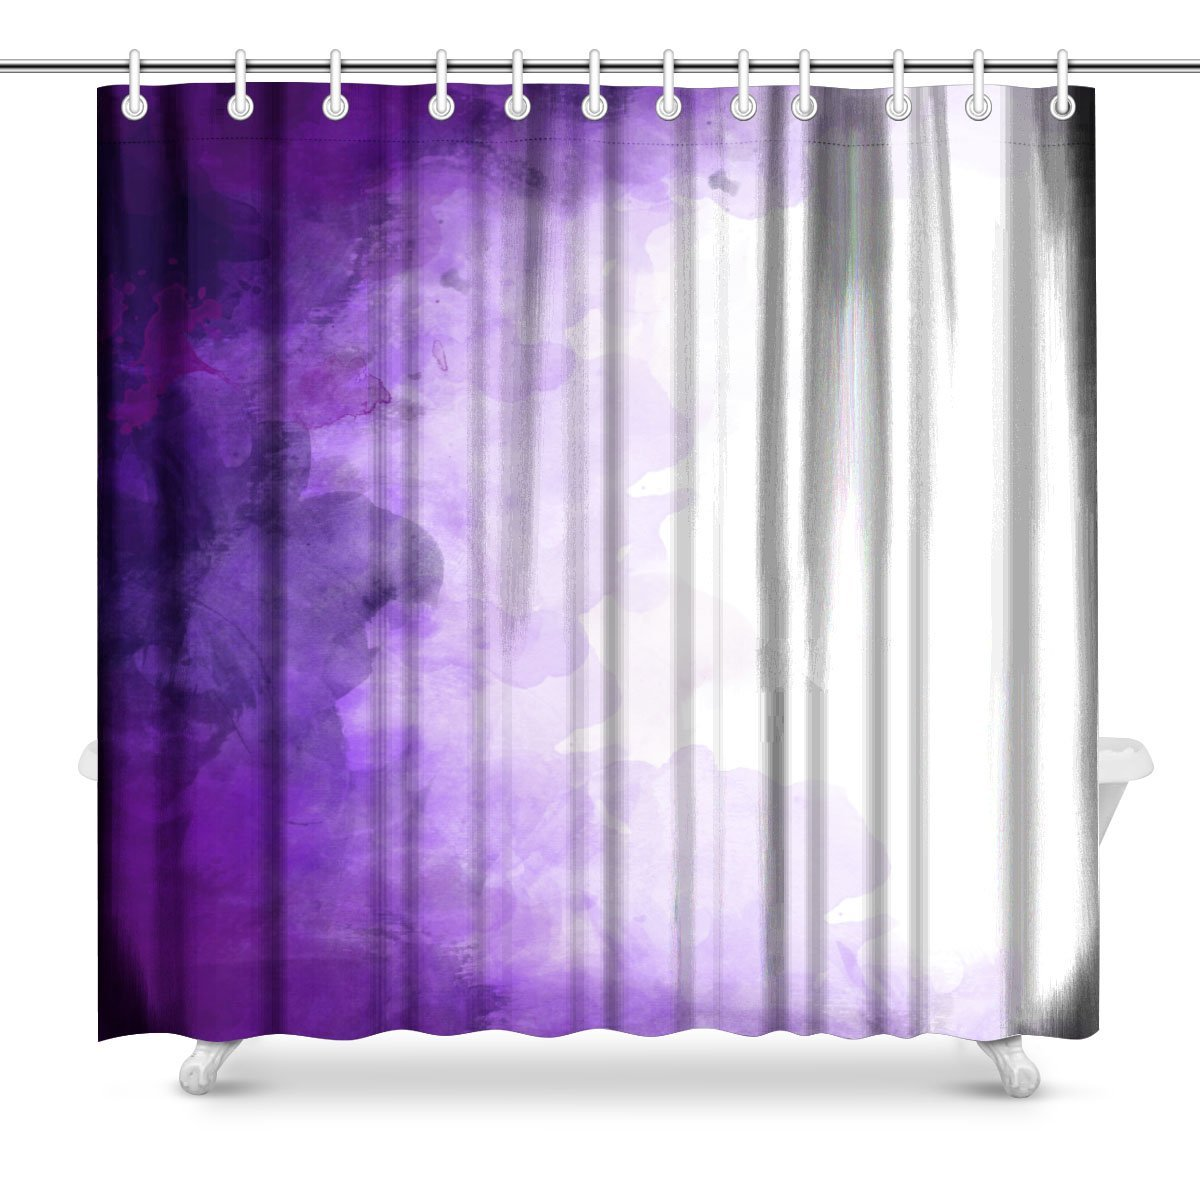 Abstract Purple Bathroom Shower Curtain Accessories 72 Inches Extra Long In Curtains From Home Garden On Aliexpress